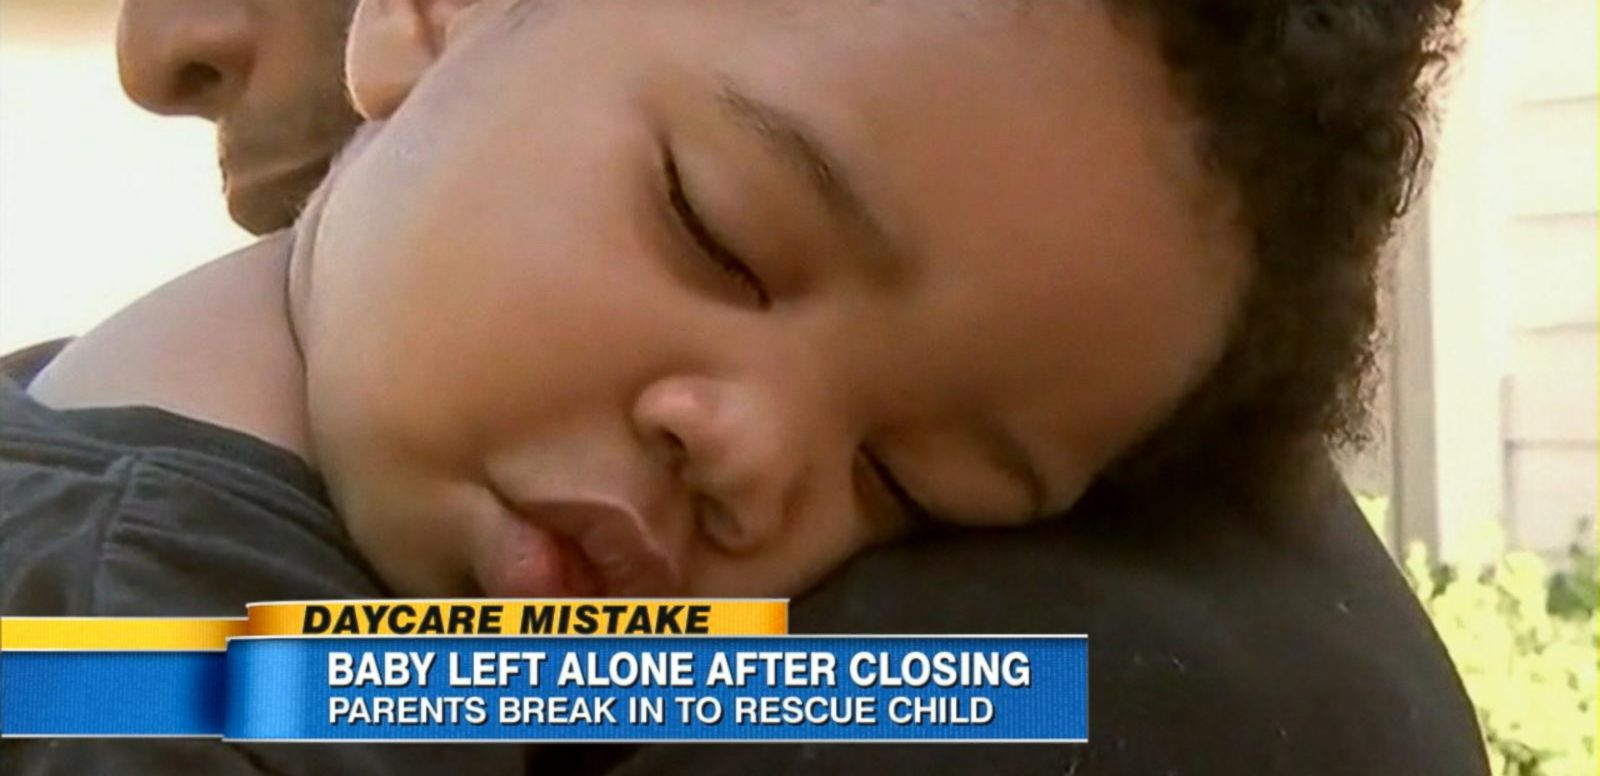 VIDEO: Daycare Center Apologizes for Mishap